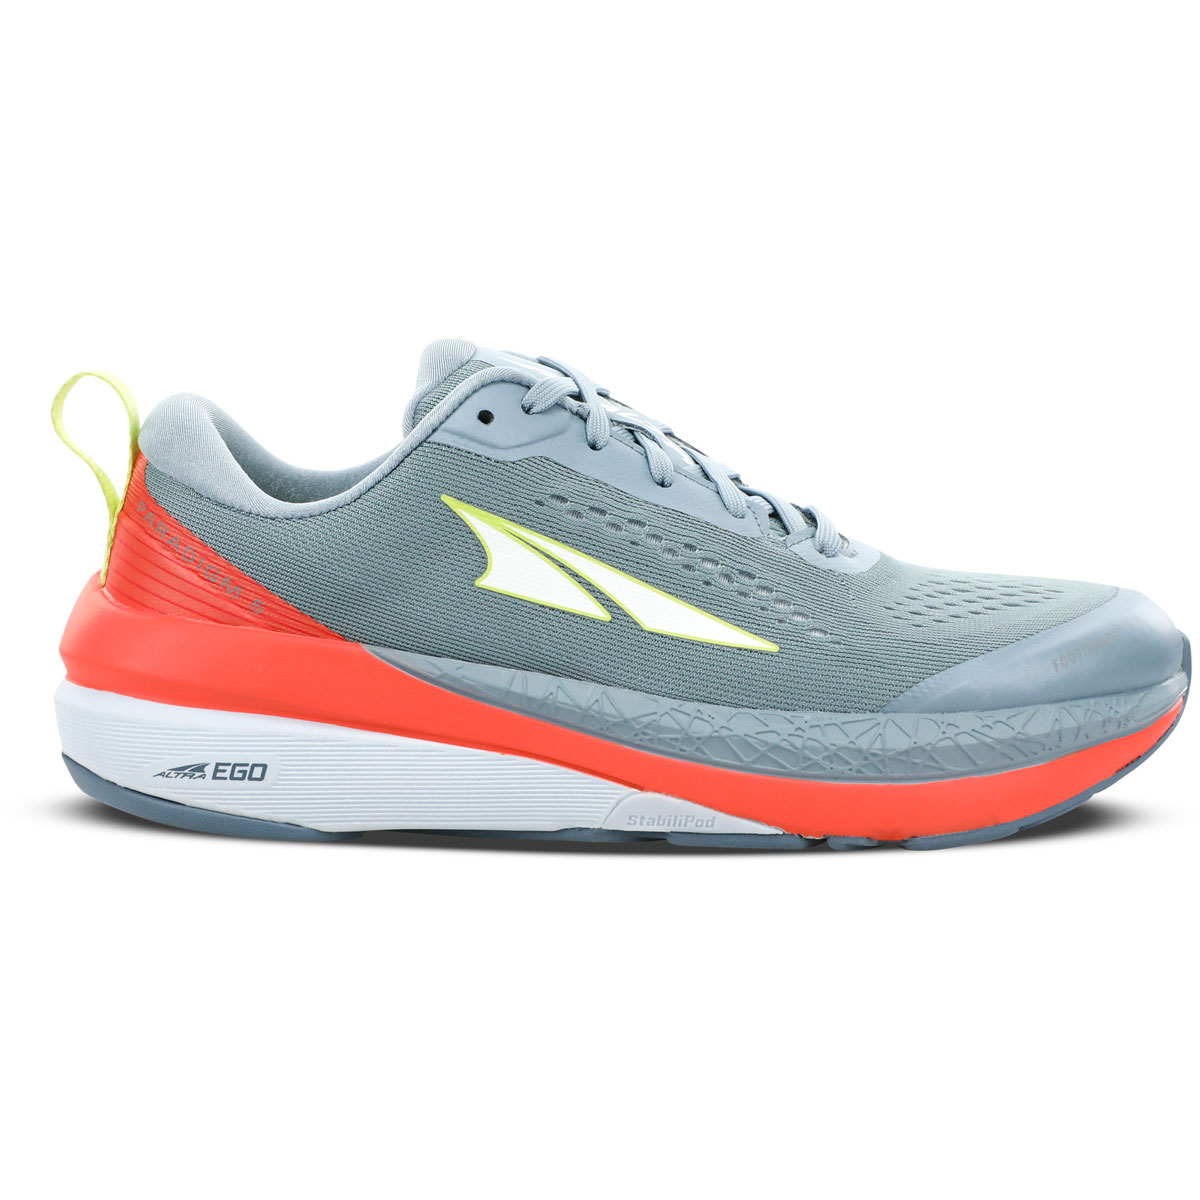 Women's Altra Paradigm 5 Running Shoe - Color: Gray/Coral - Size: 5.5 - Width: Regular, Gray/Coral, large, image 1